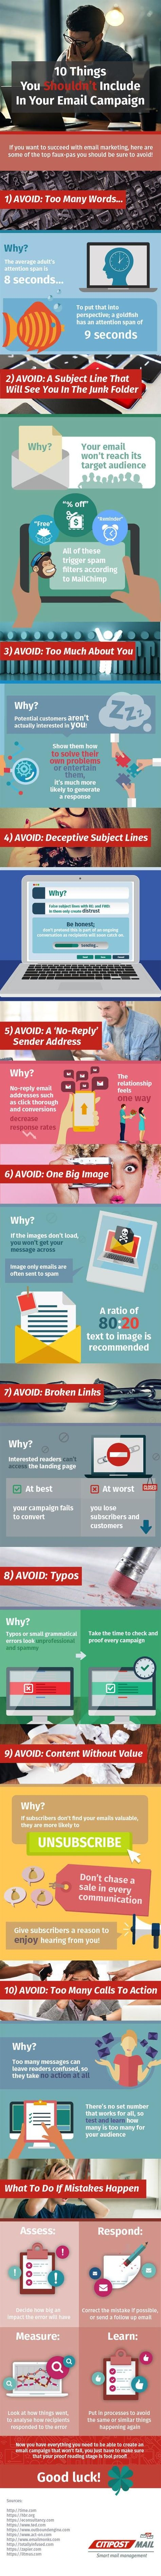 10 Ways to Ruin an Email Campaign [Infographic]